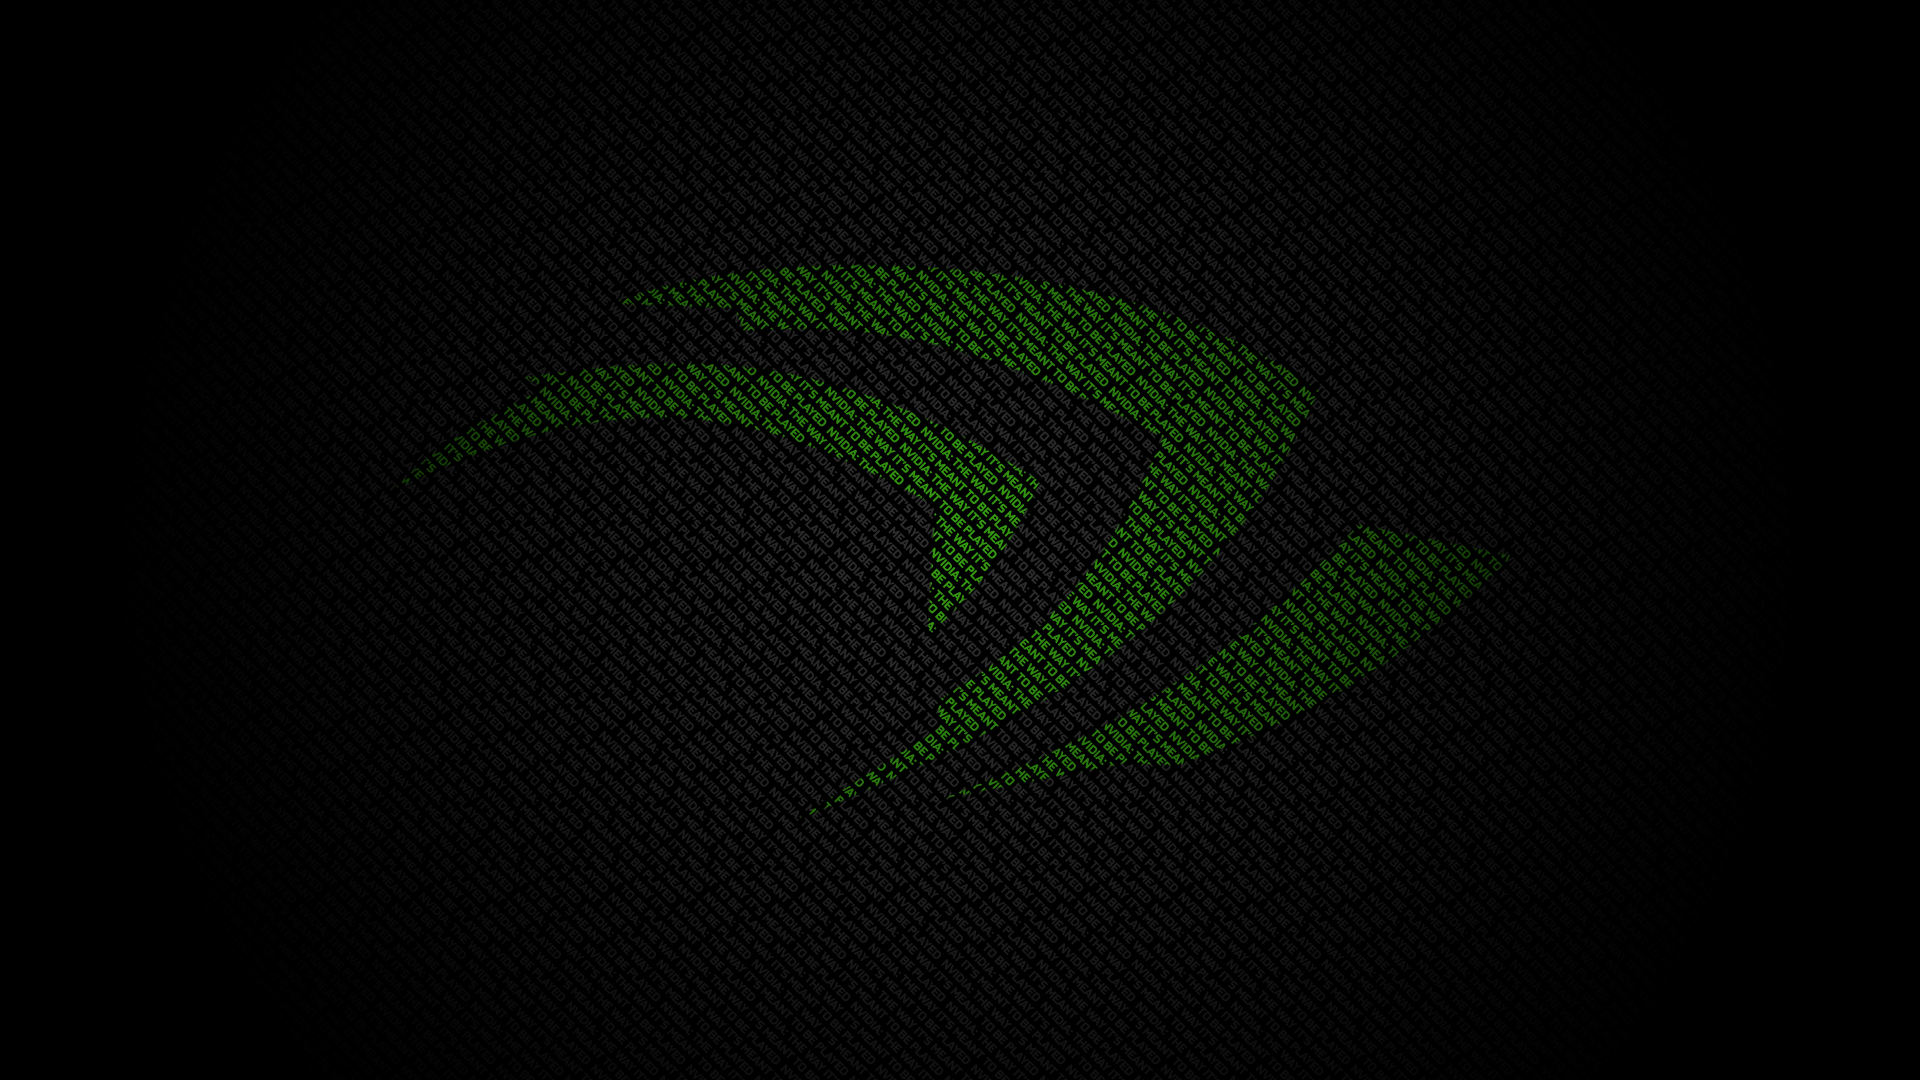 Nvidia Green Wallpapers Top Free Nvidia Green Backgrounds